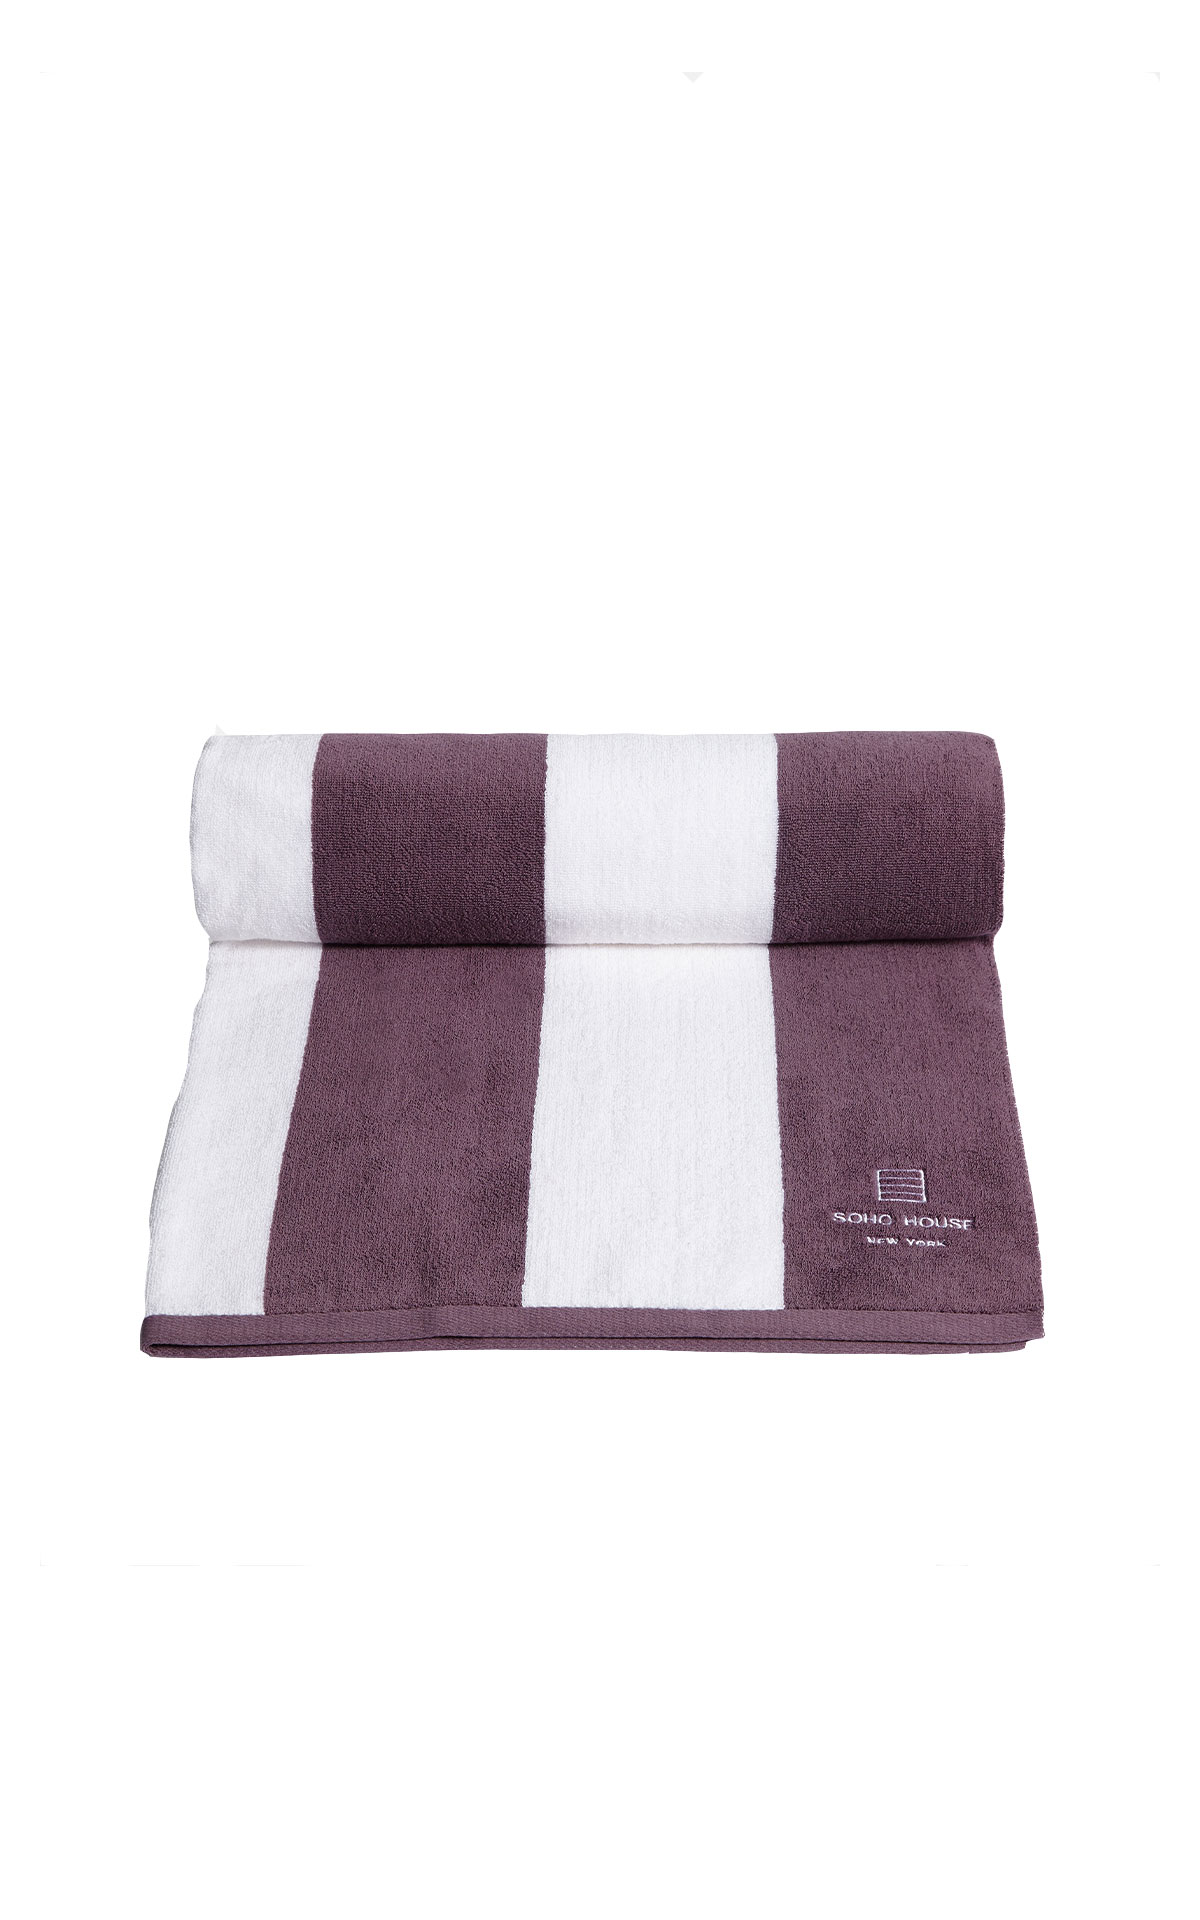 Soho Home House pool towel new york from Bicester Village